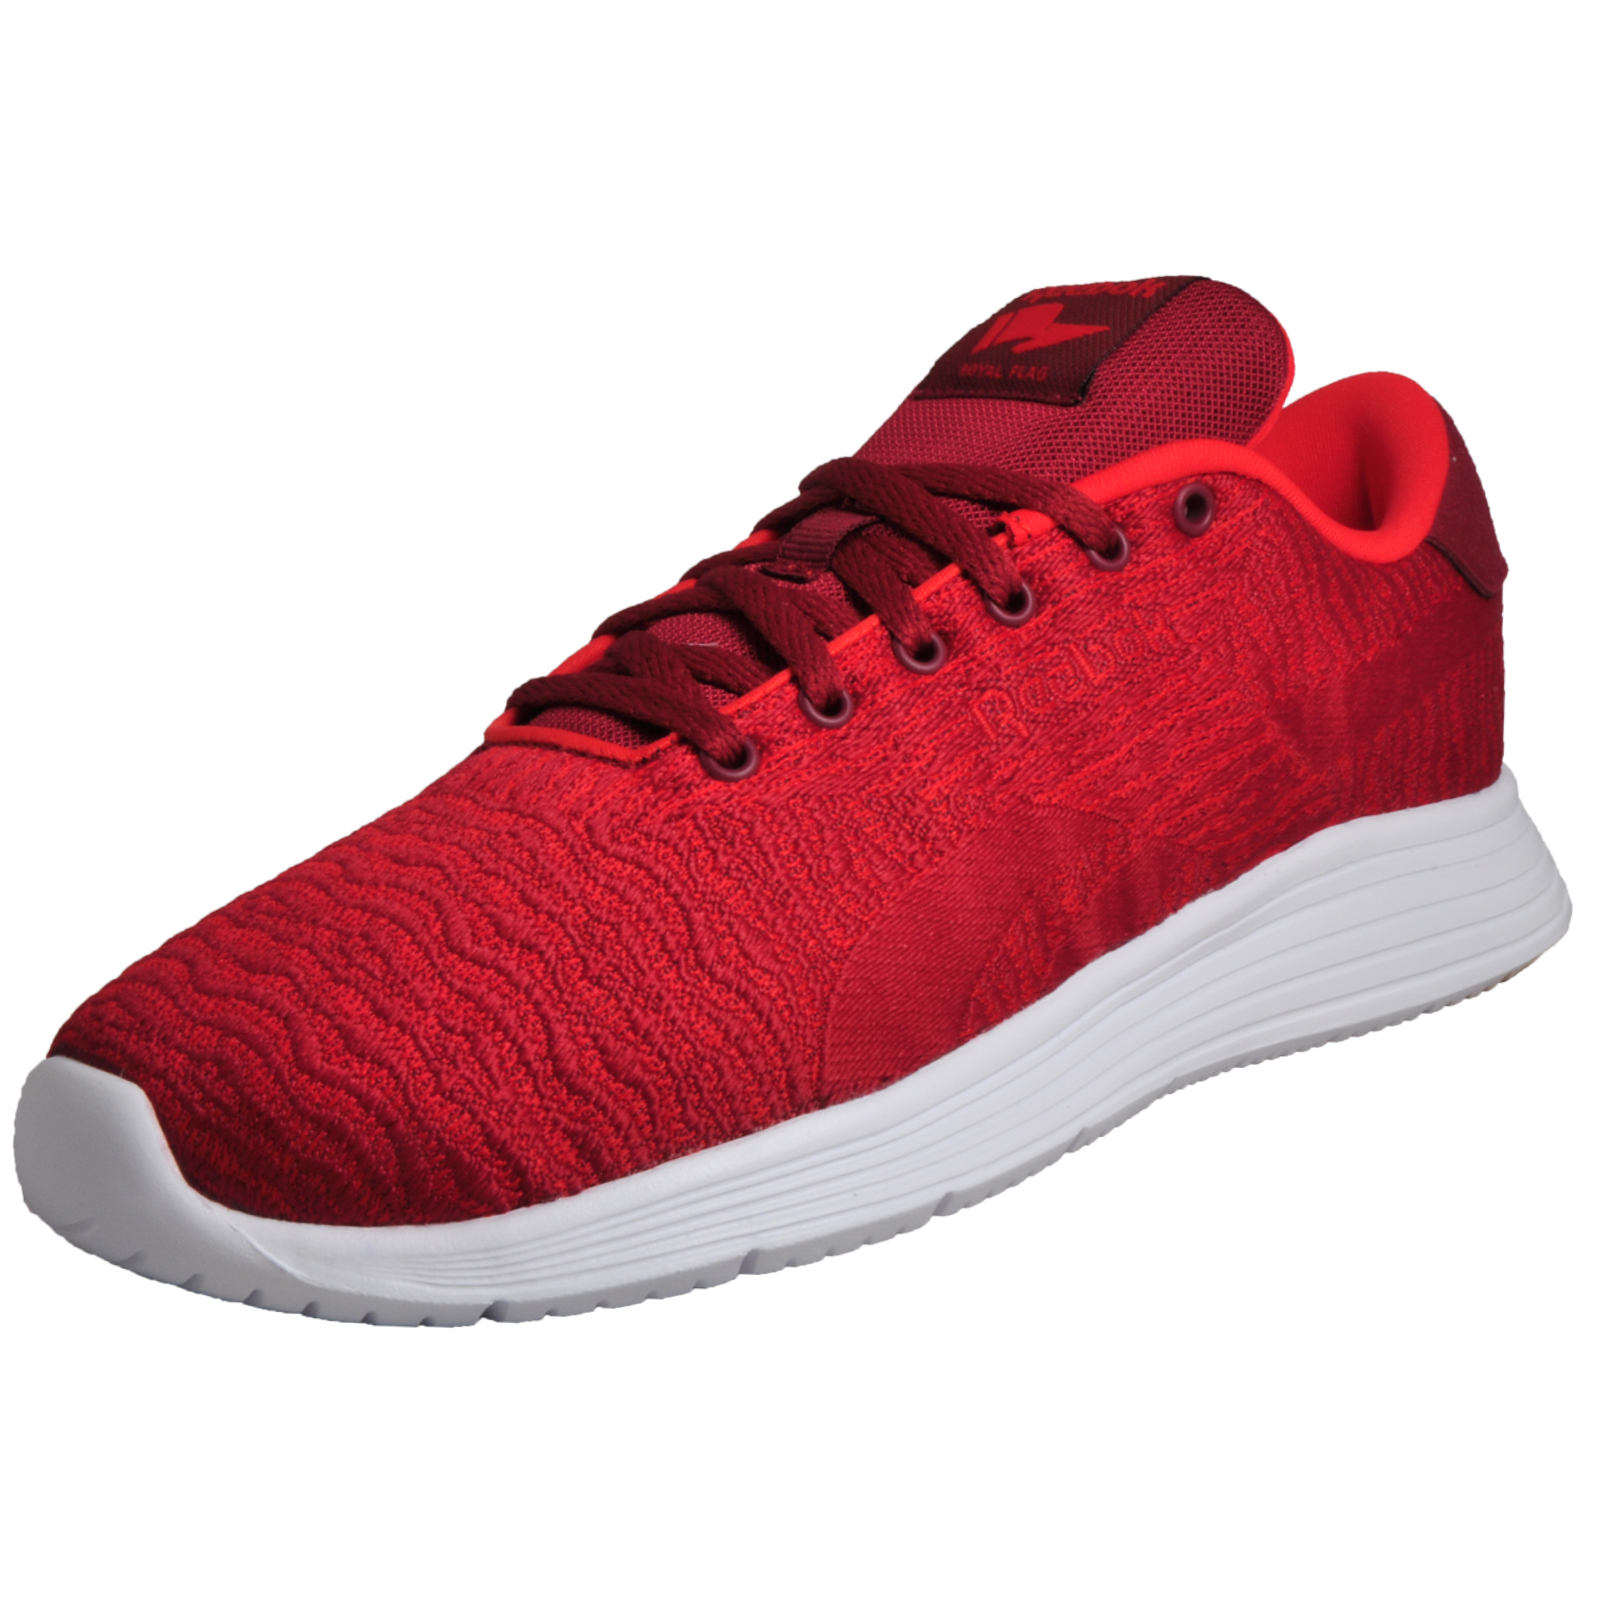 Reebok Royal EC Ride Men s Running Shoes Fitness Gym Trainers Red  fd8643544